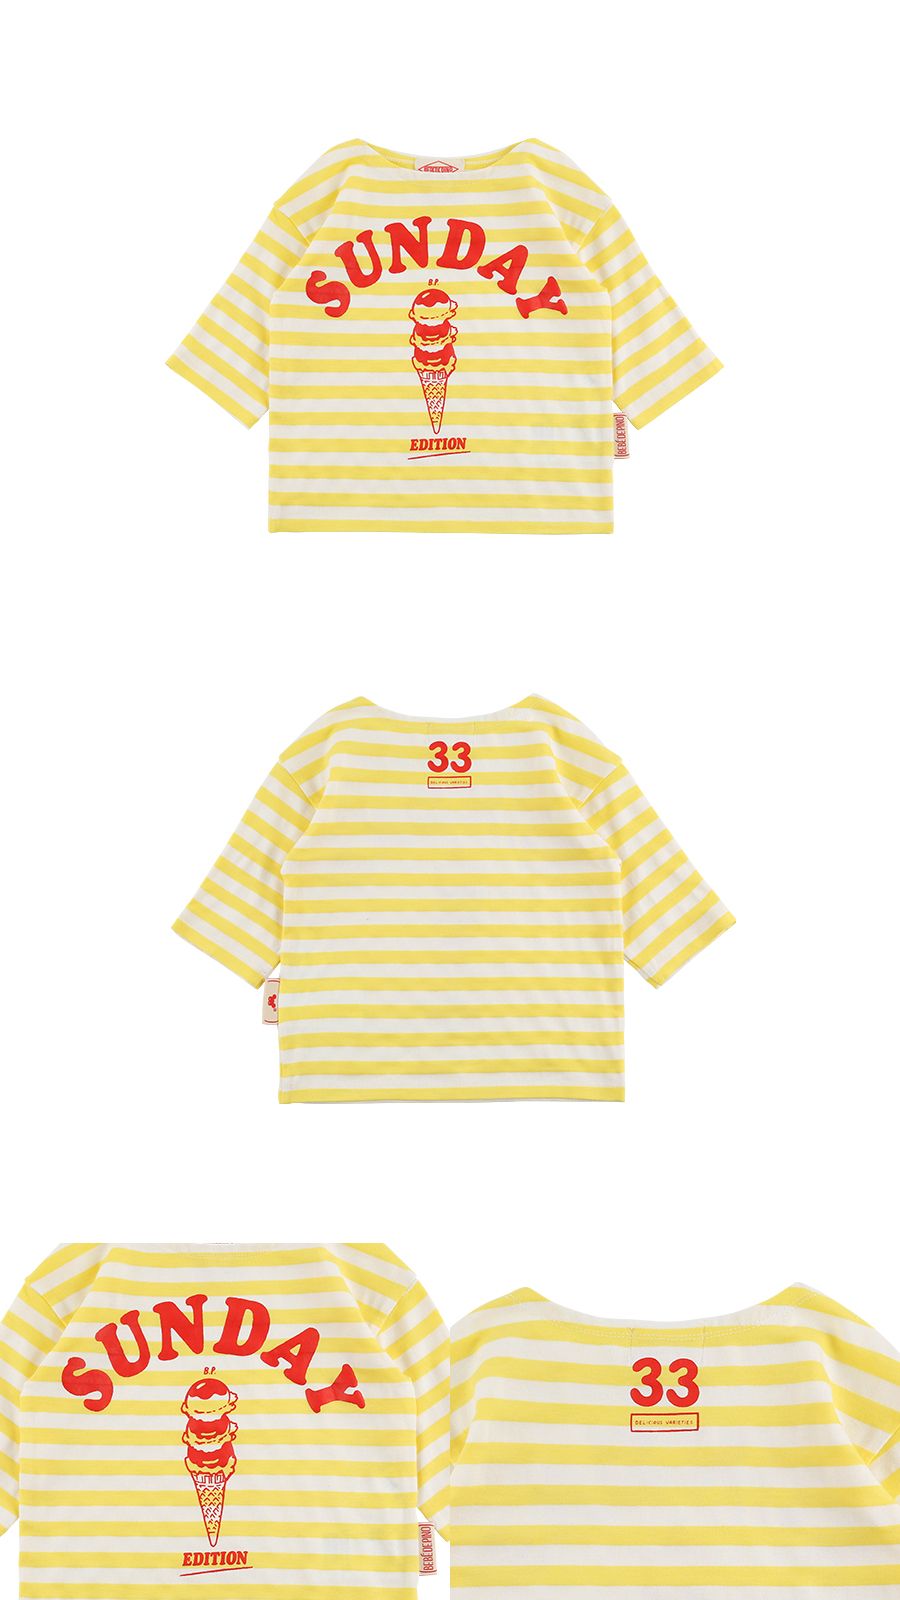 Sunday ice cream baby three-quarter tee 상세 이미지